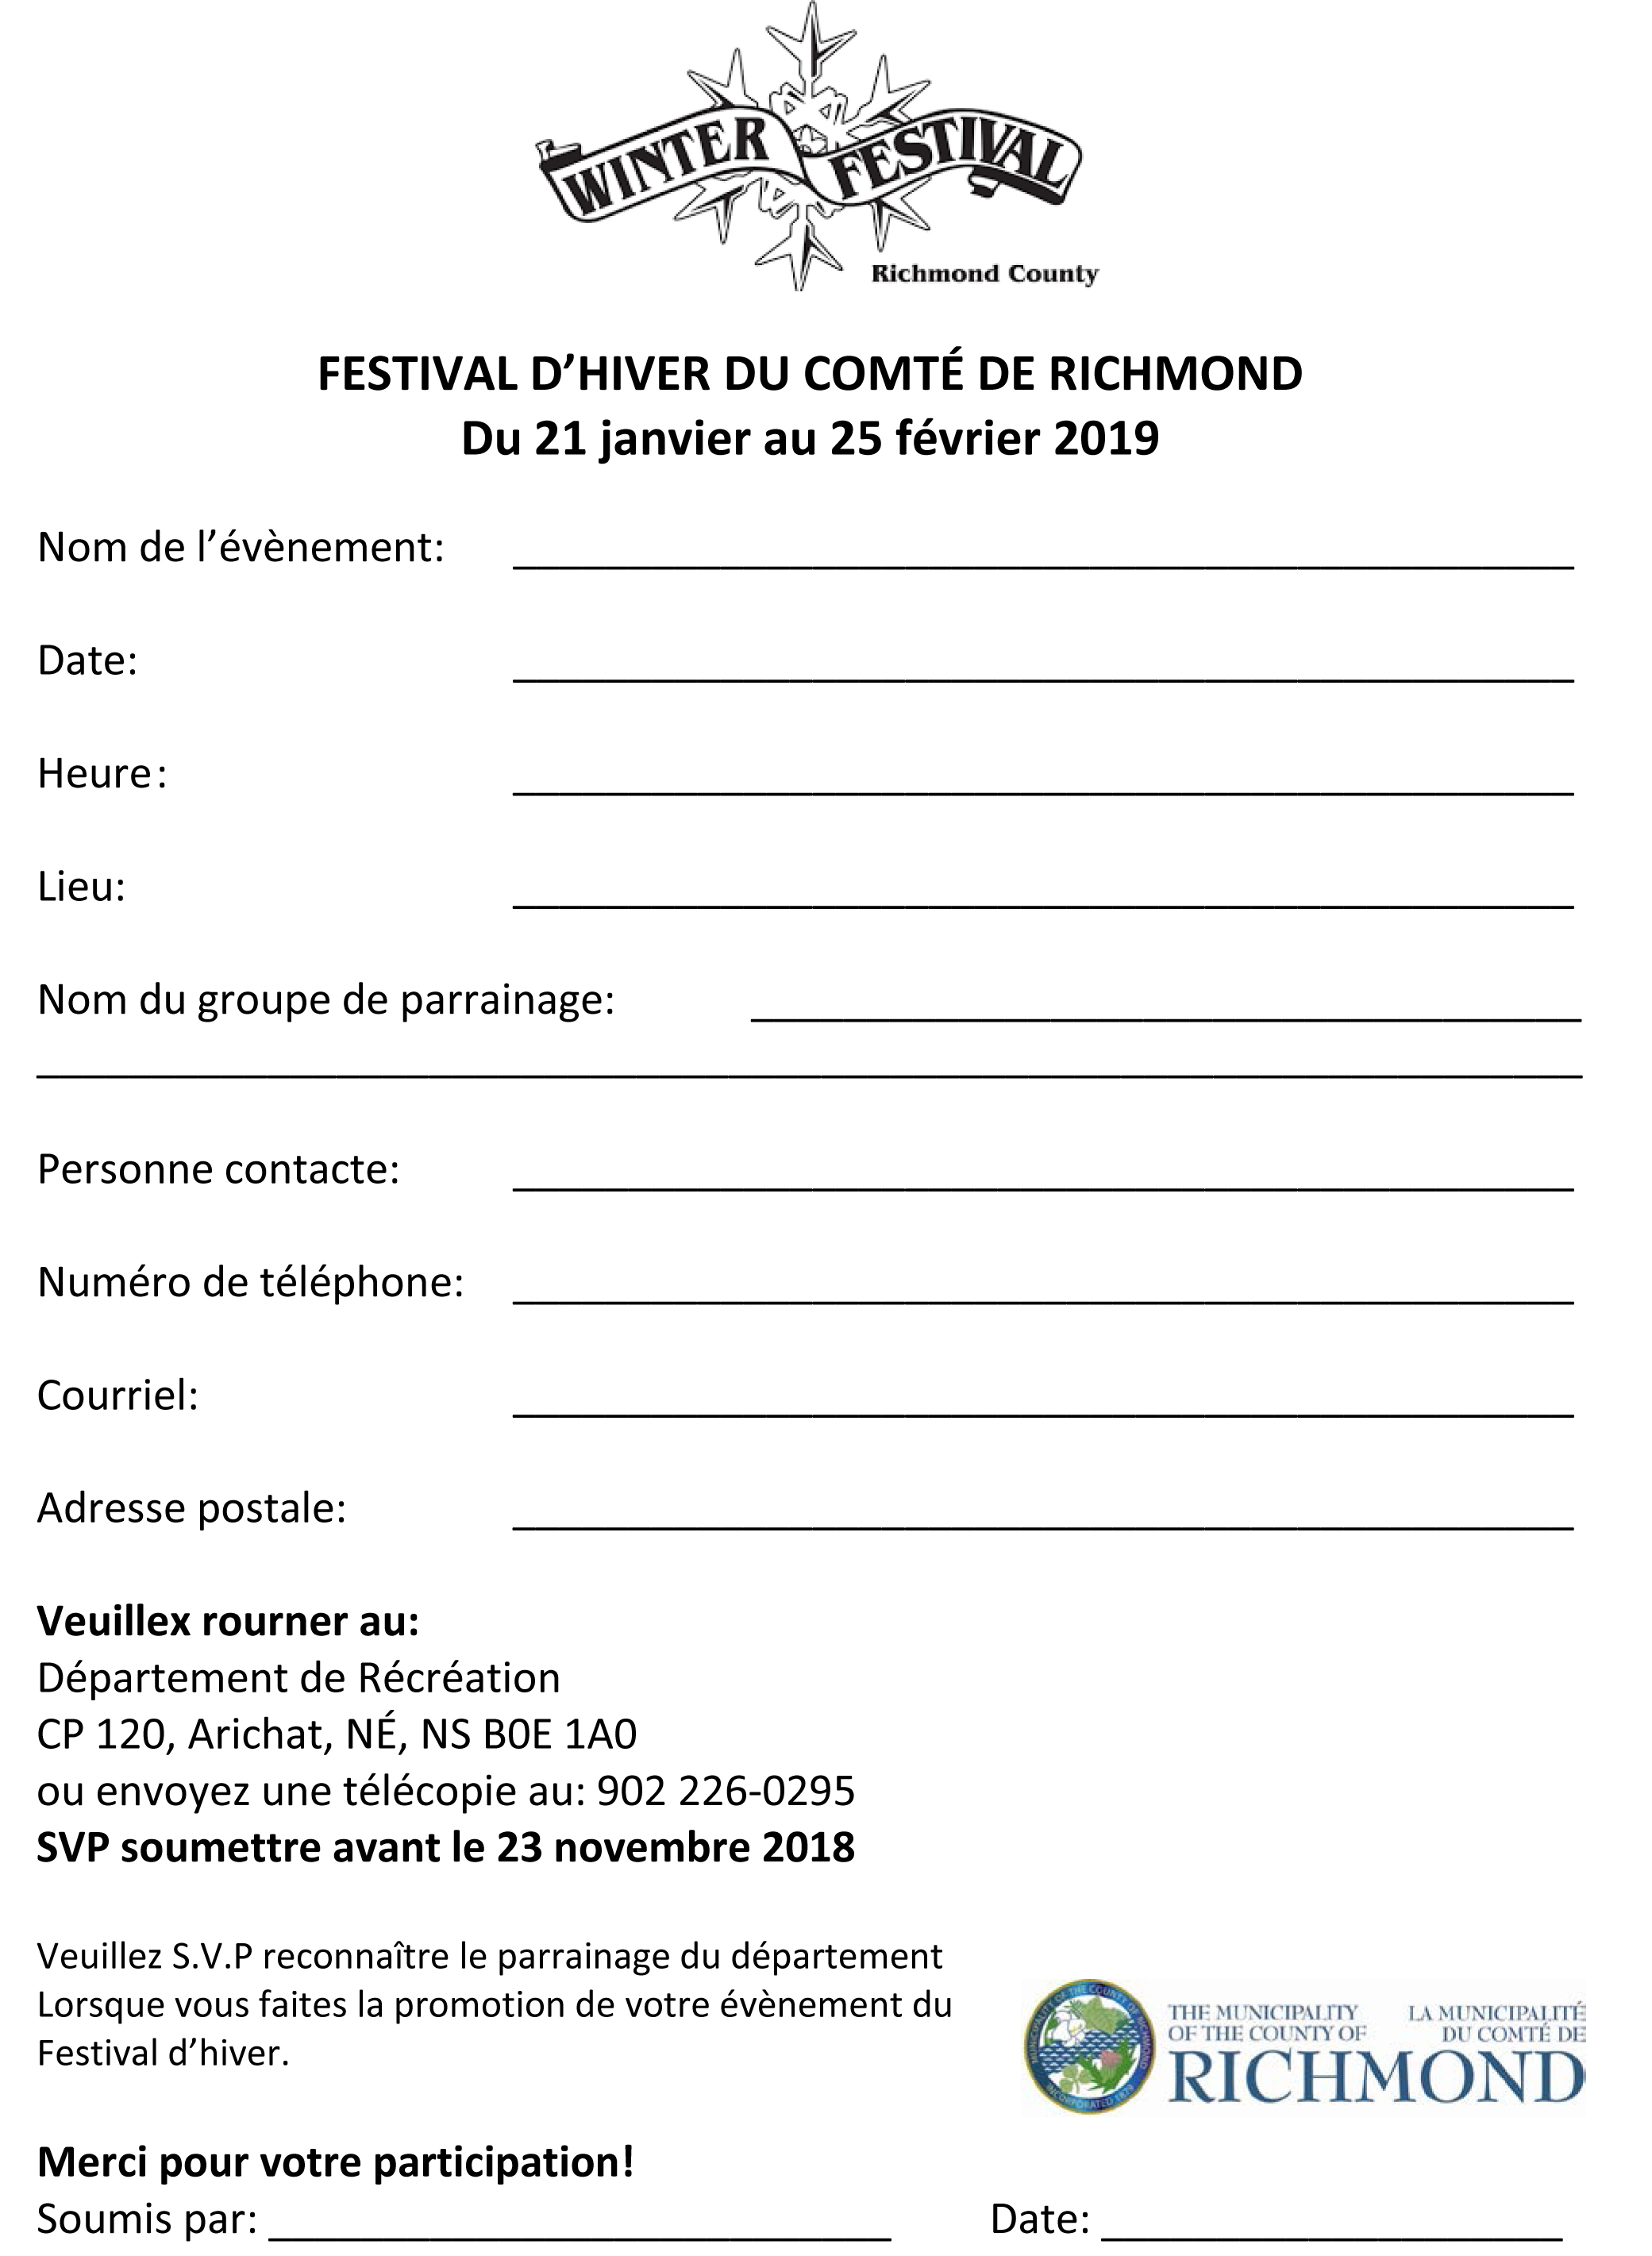 Richmond County Winter Festival Form French